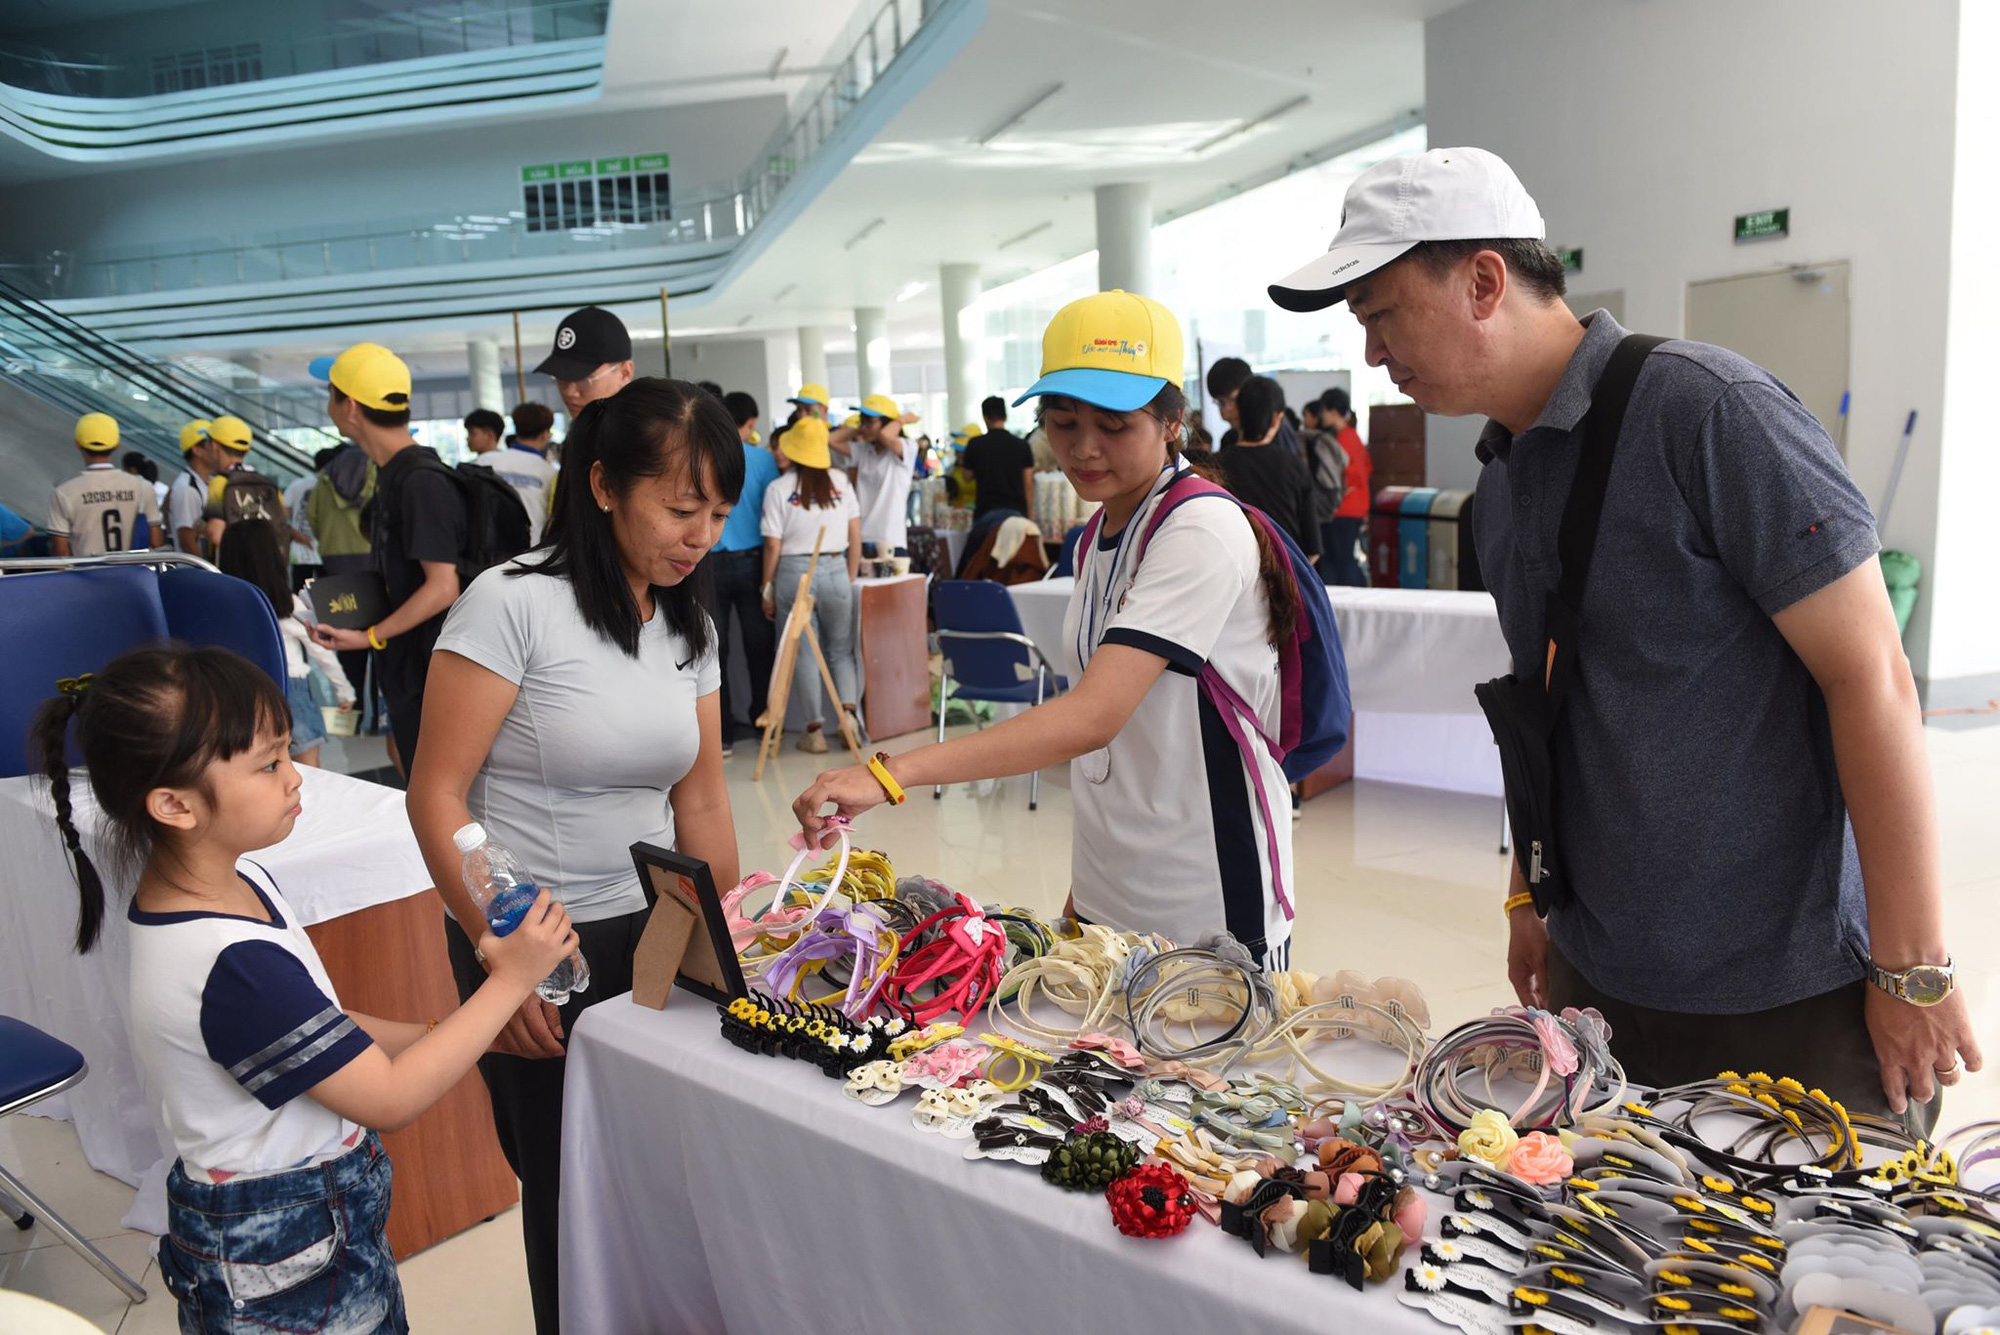 Souvenirs are sold to raise fund. Photo: Duyen Phan / Tuoi Tre